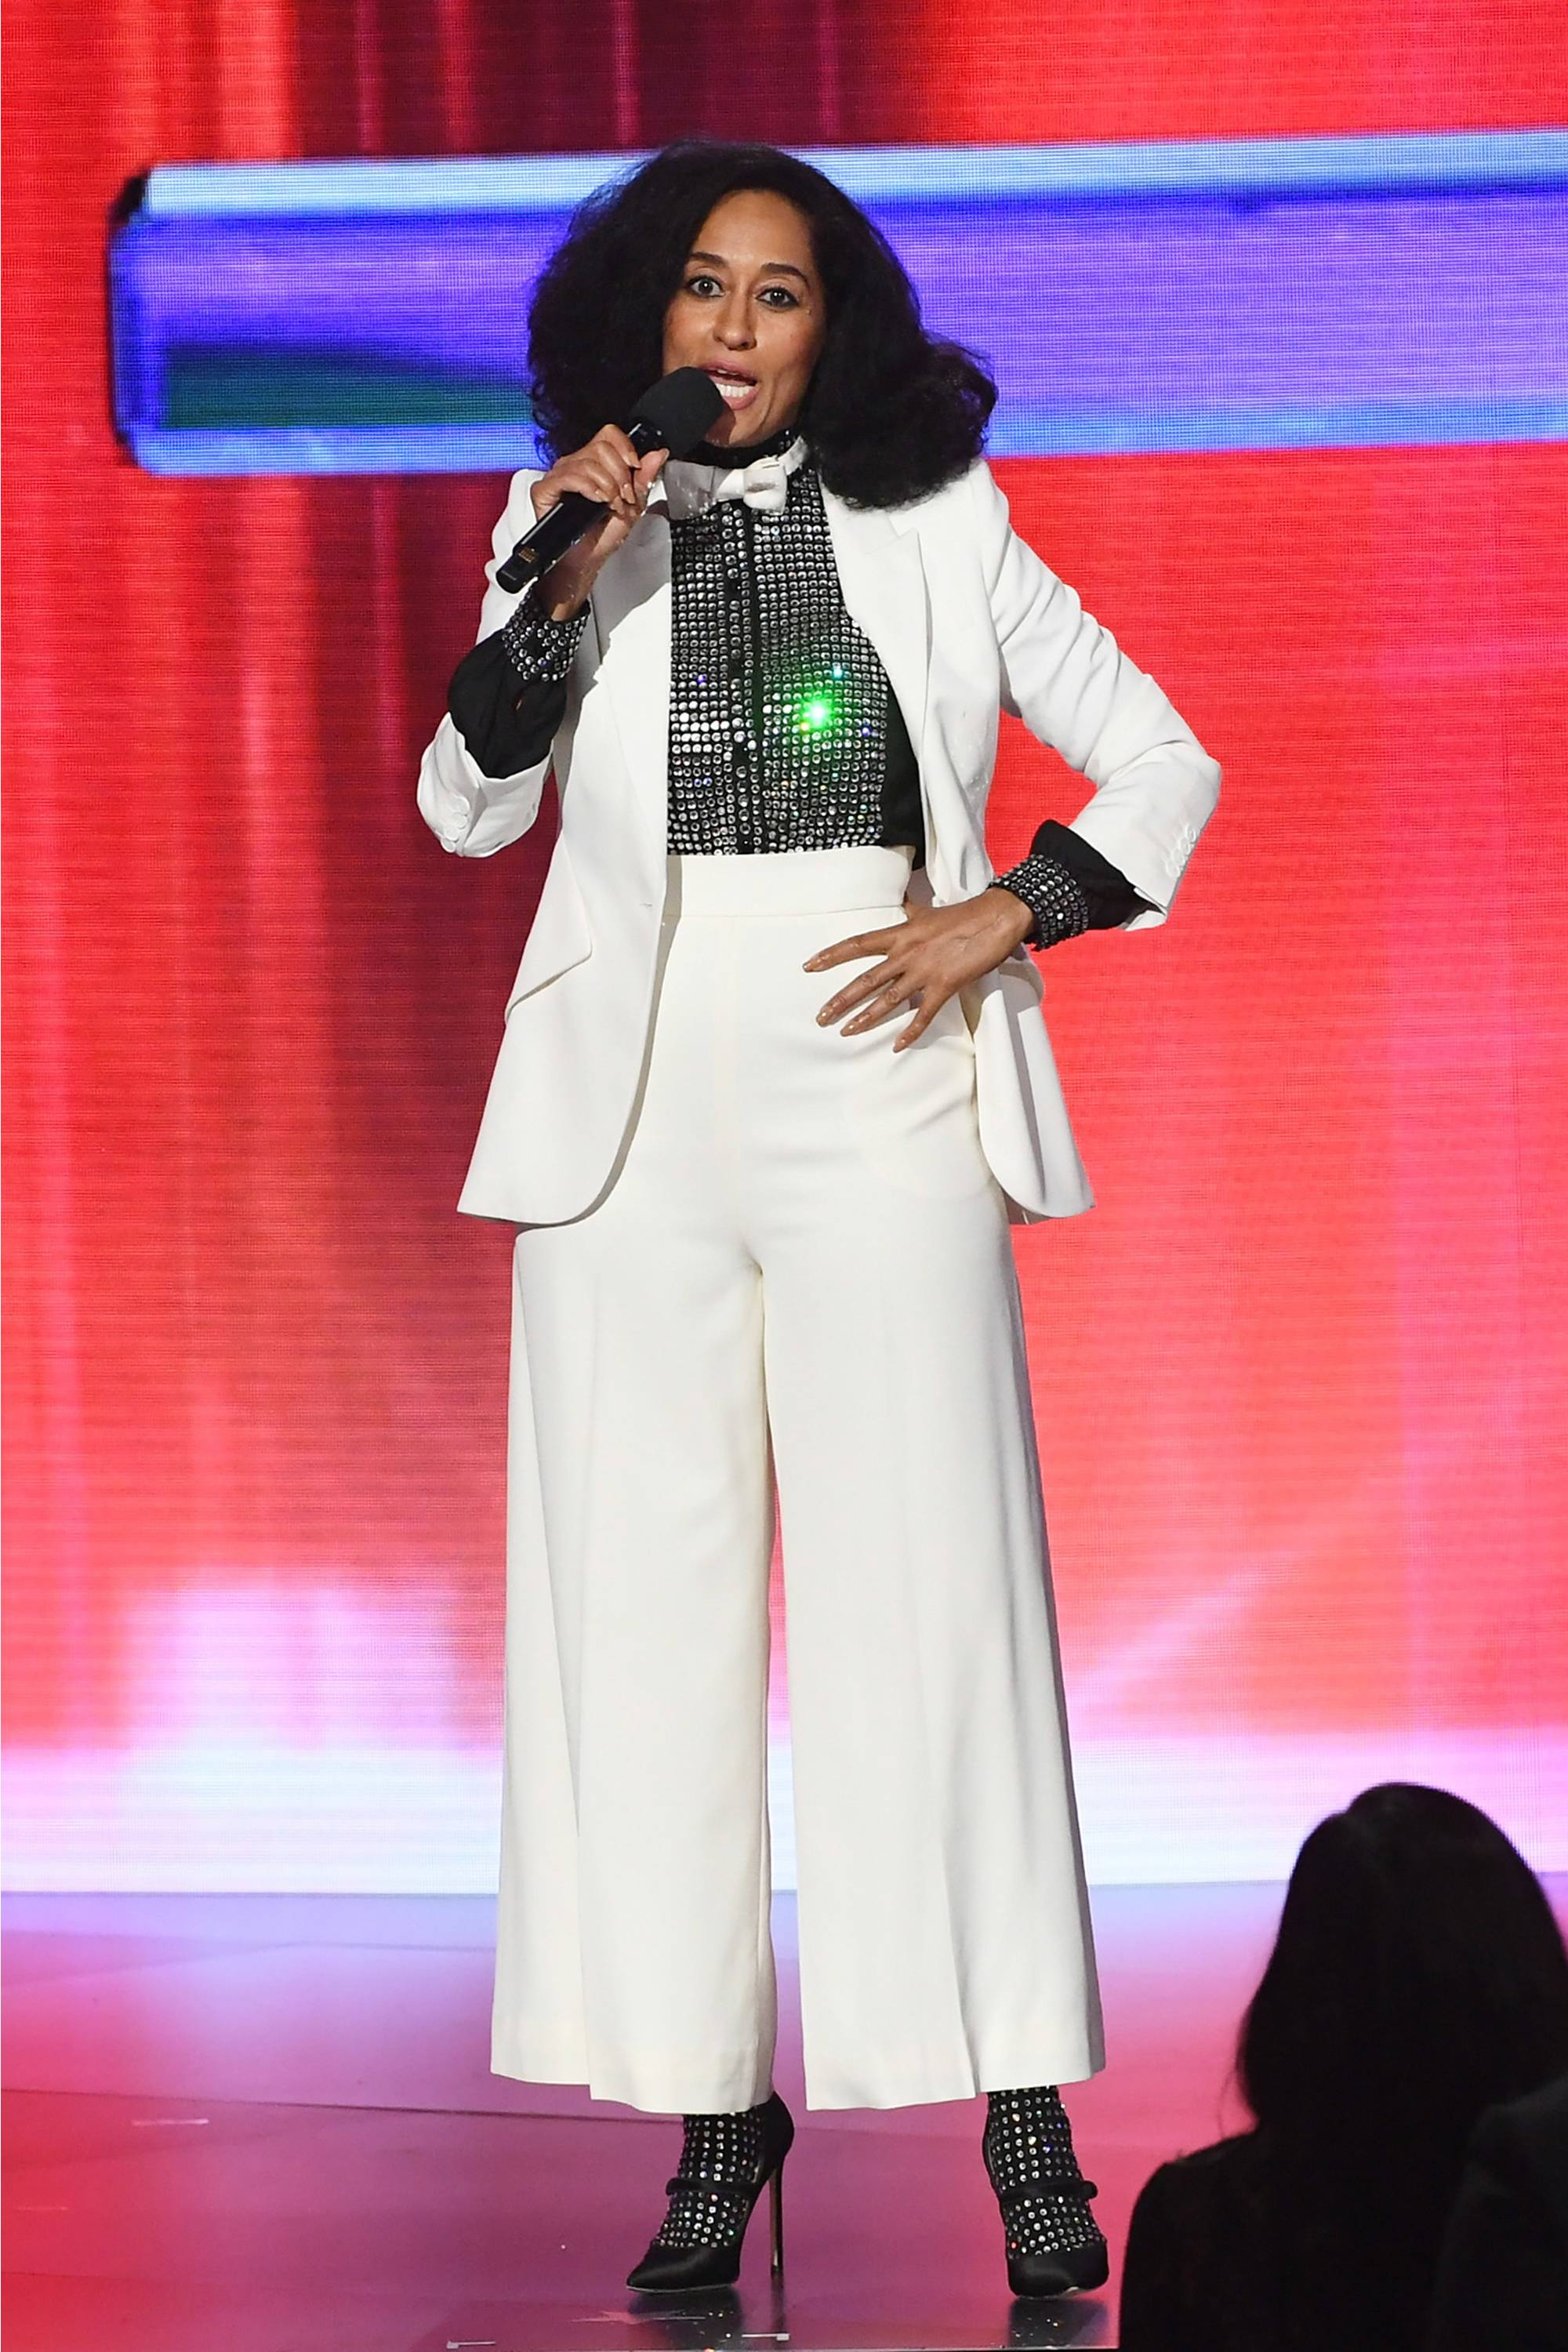 TRACEE ELLIS ROSS HOSTED THE 2017 AMA'S IN STYLE!